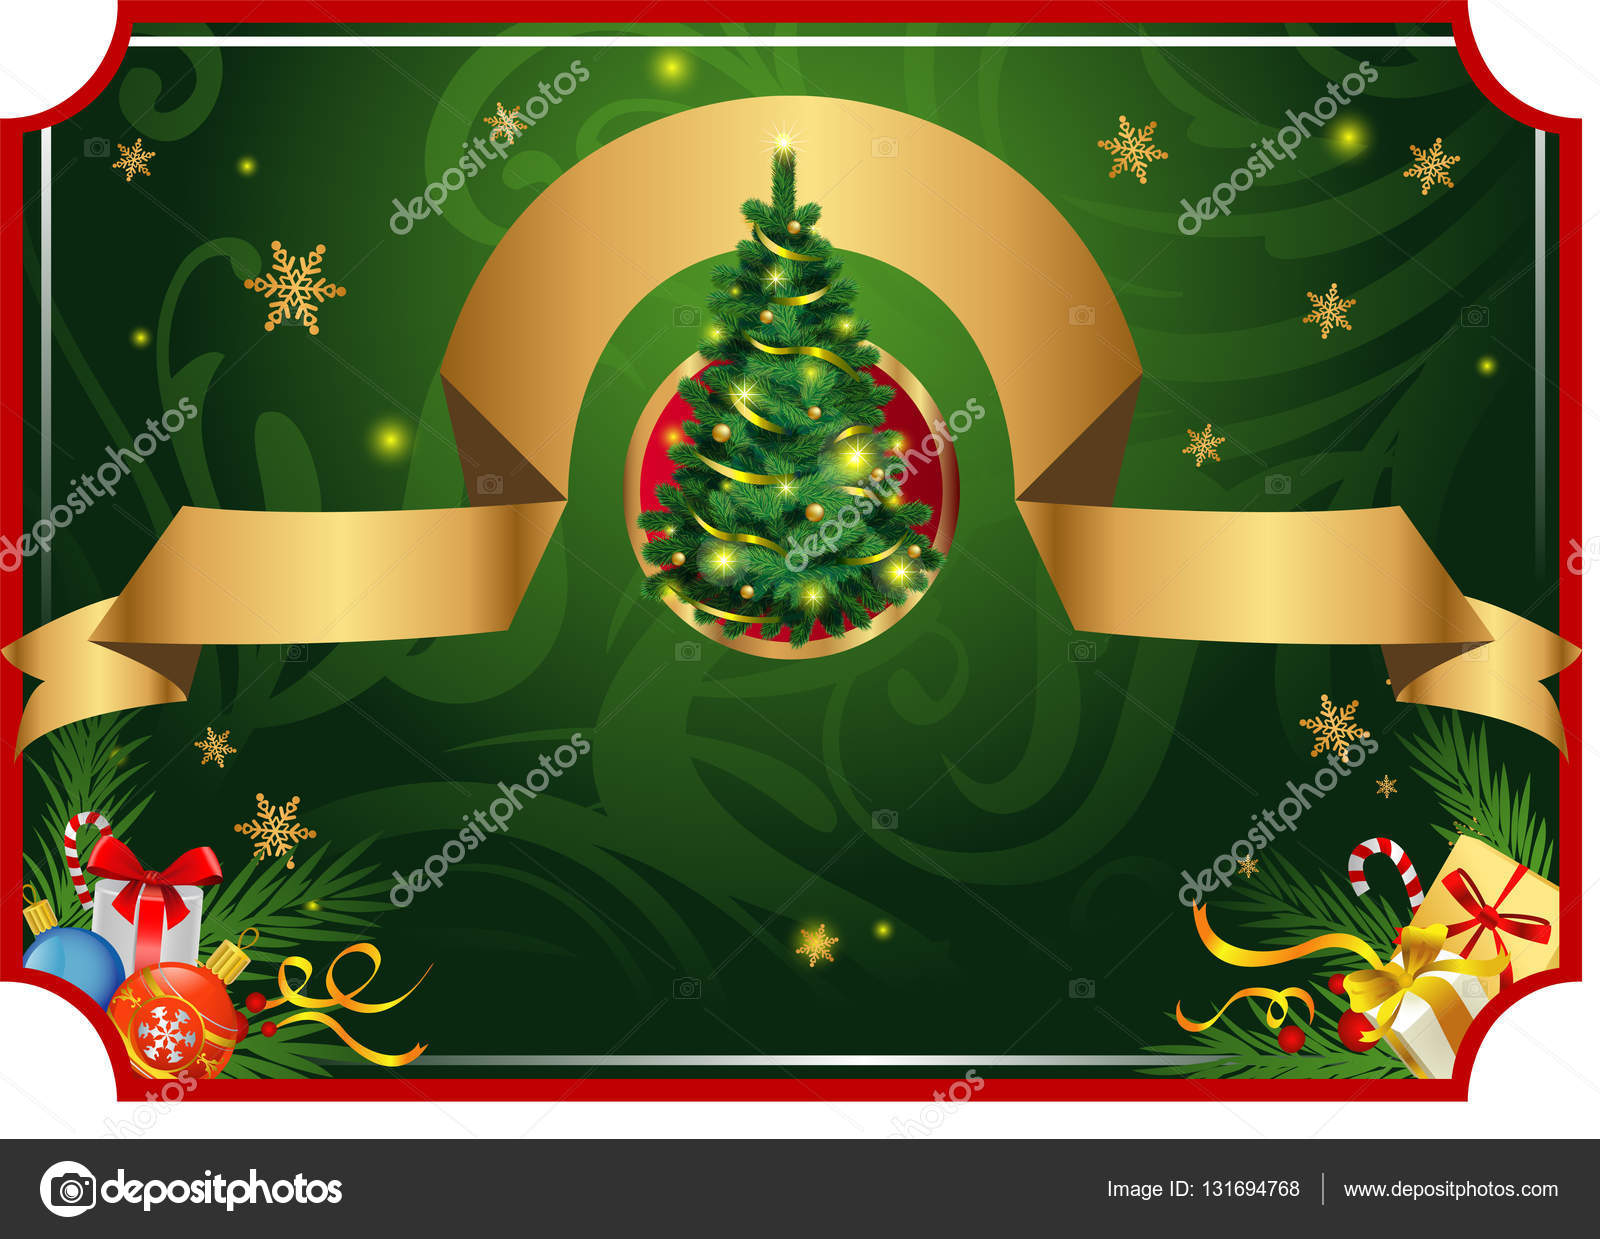 Classic christmas card stock vector azzzya 131694768 christmas classic background for greeting cards banners presentations decorations vector by azzzya m4hsunfo